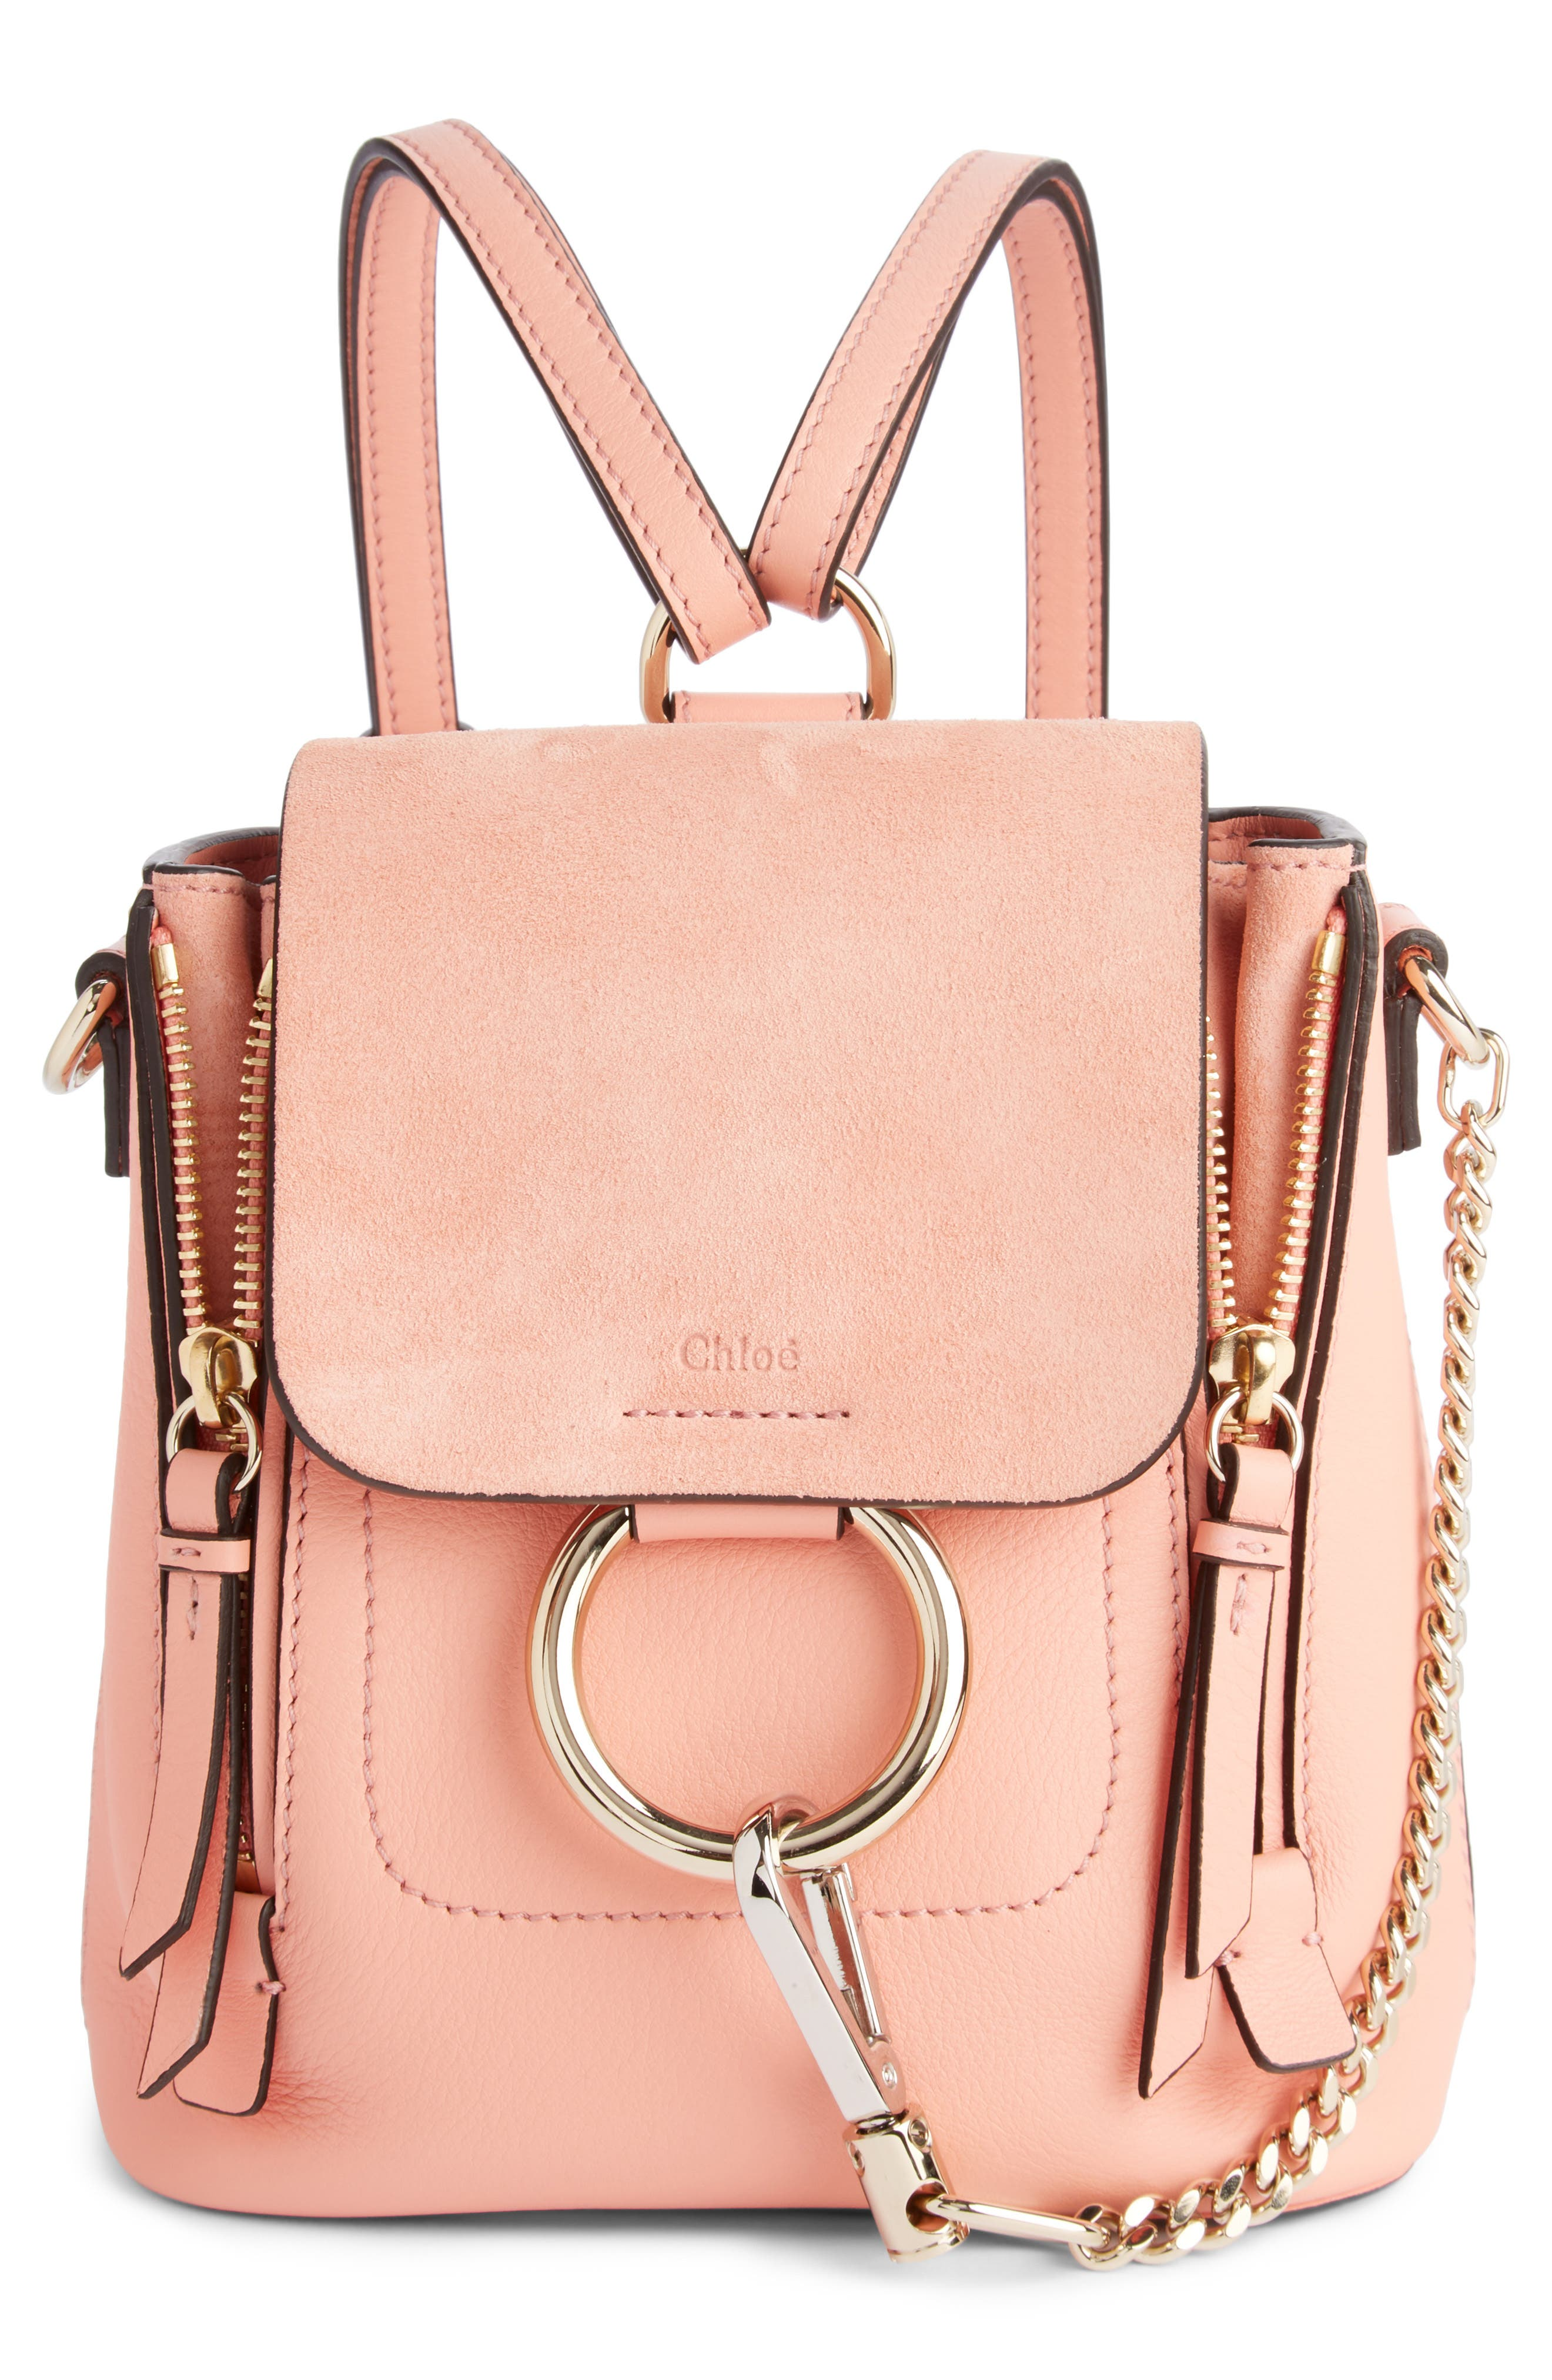 Main Image - Chloé Mini Faye Leather & Suede Backpack